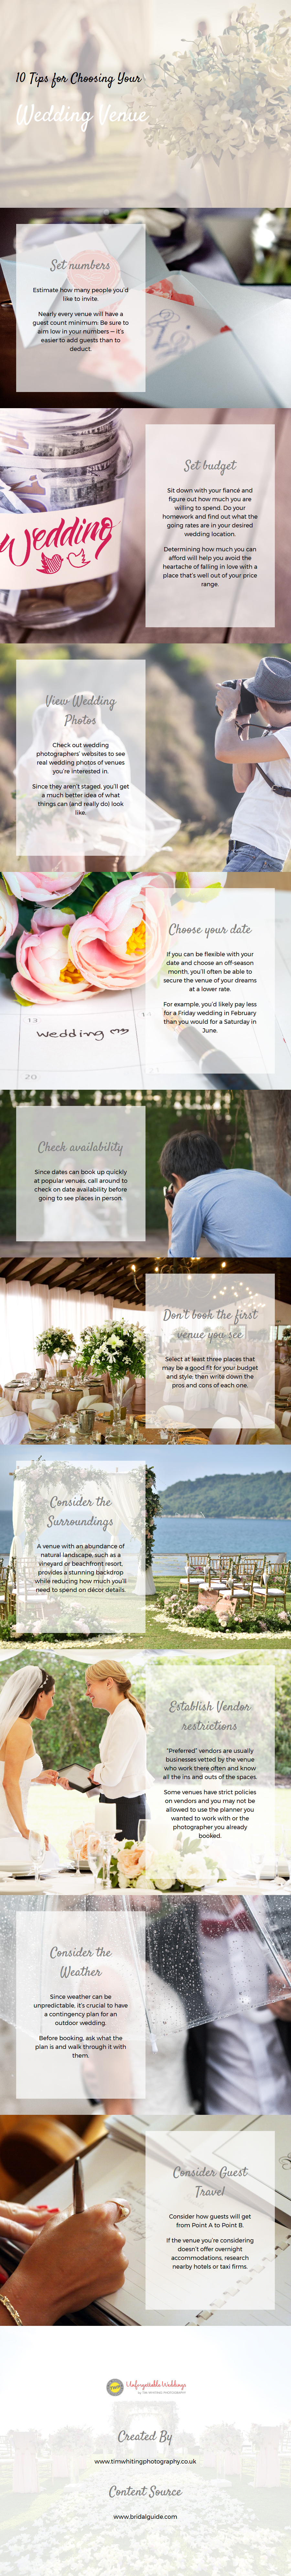 10 Tips for Choosing Your Wedding Venue.jpg